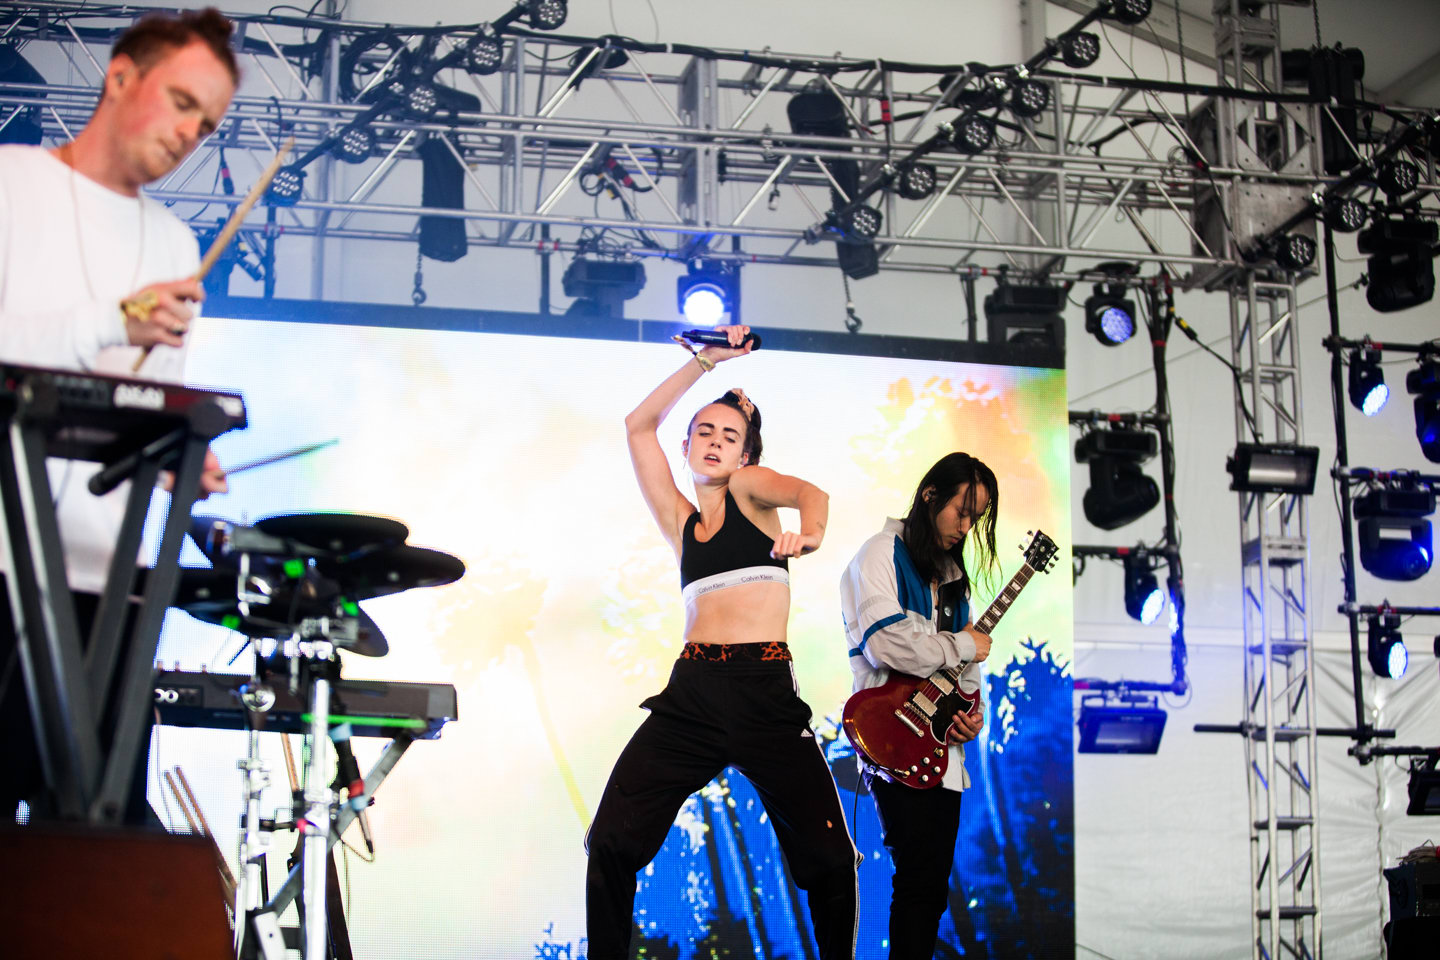 38 Photos That Prove This Year's Governors Ball Was The Best Yet